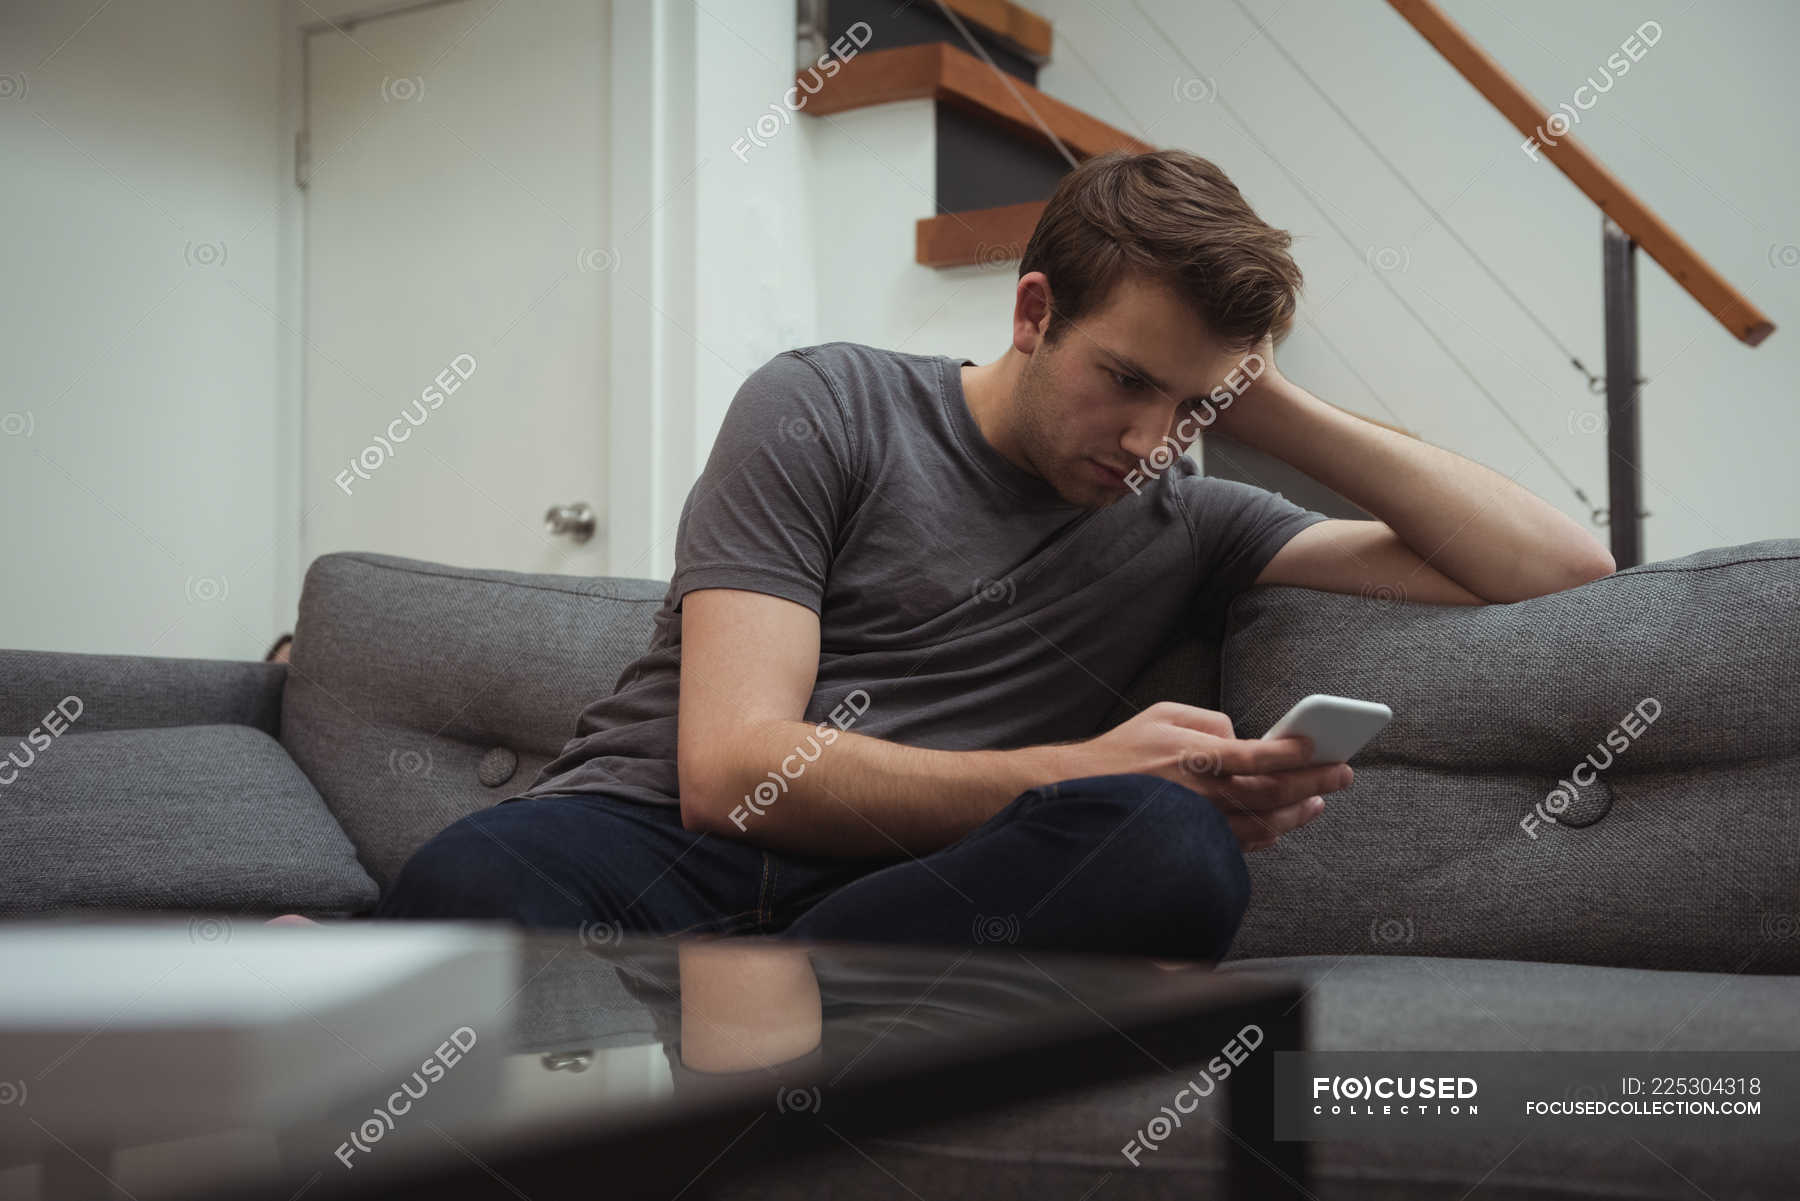 Man Using Mobile Phone On Sofa At Home